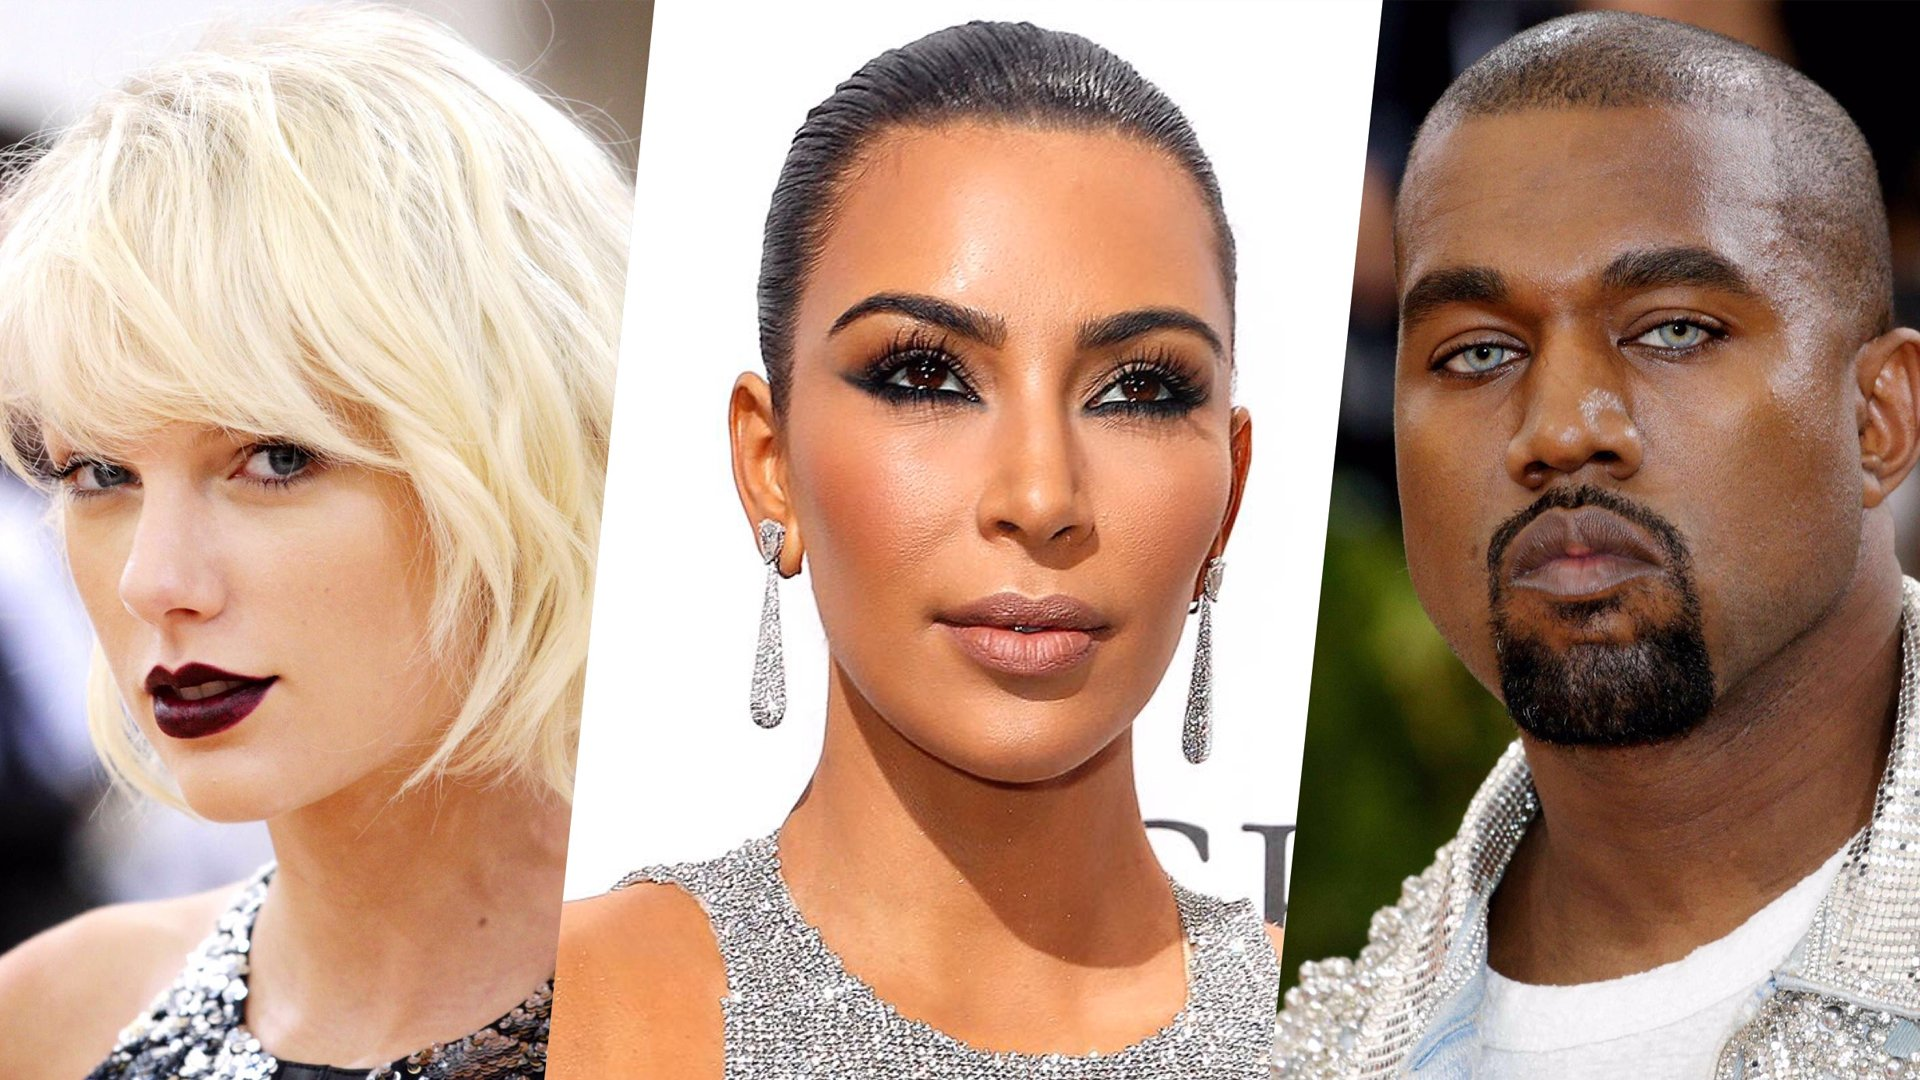 Kim Kardashian, Kanye West, Taylor Swift